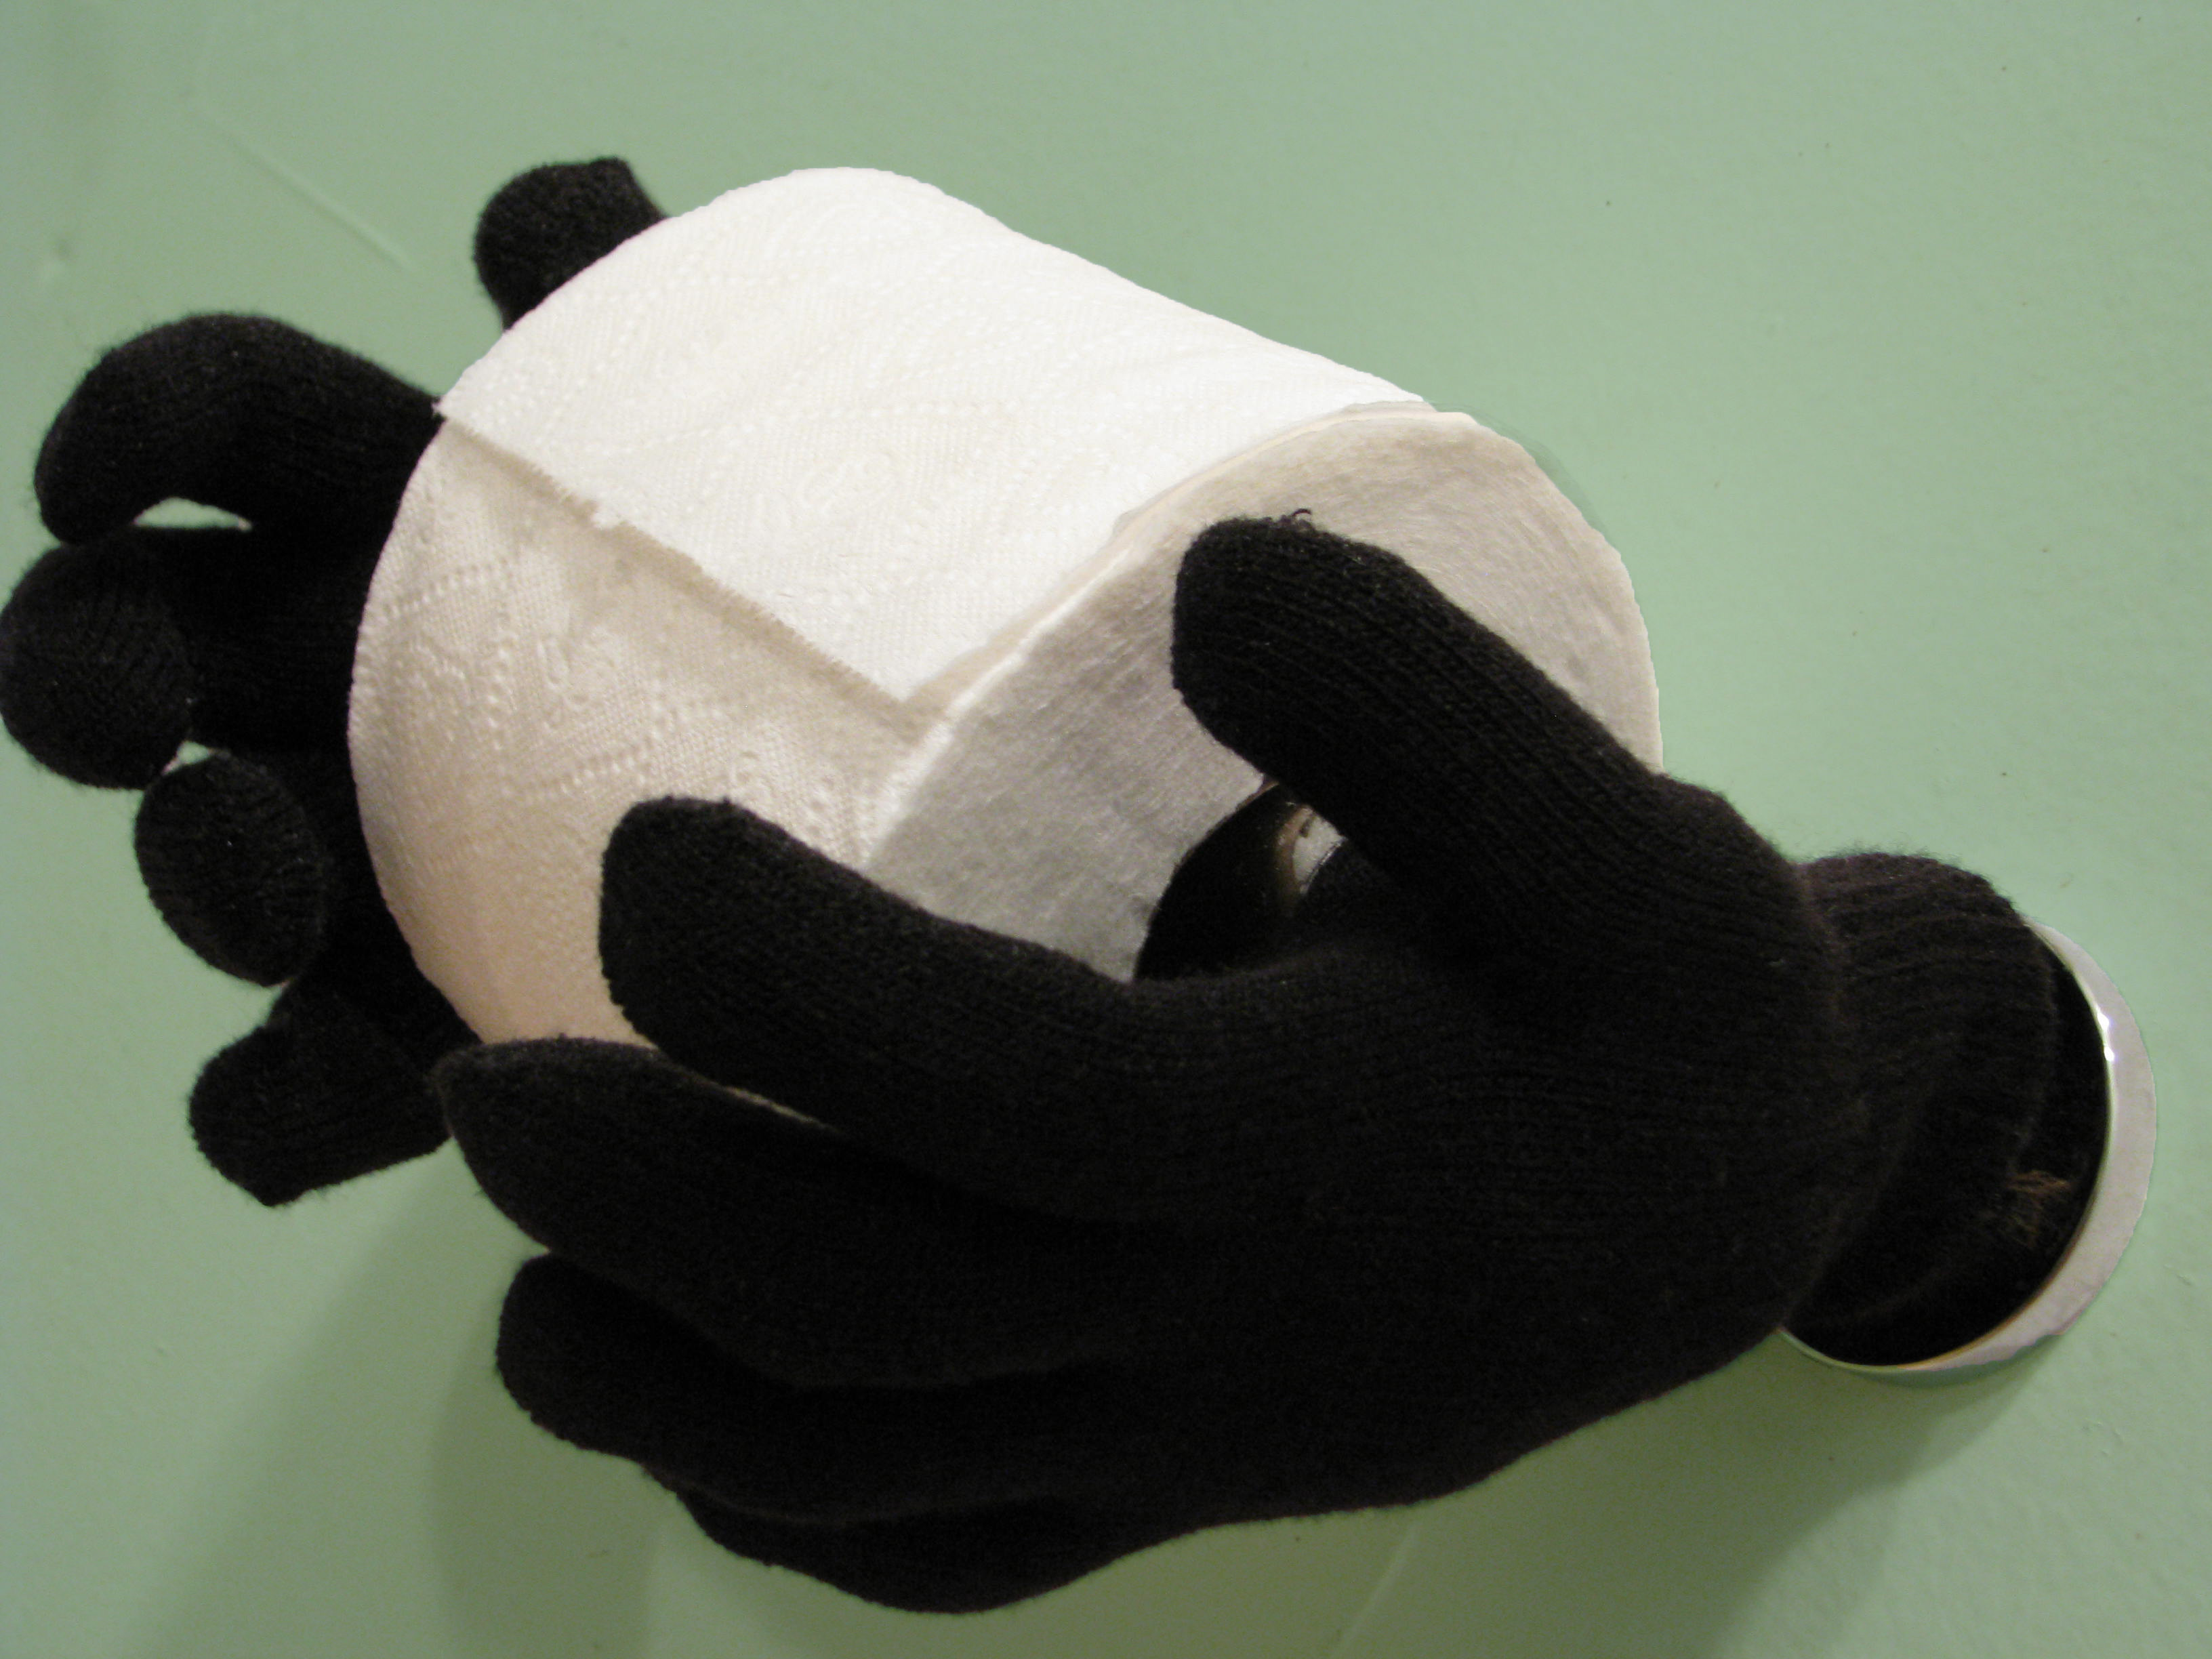 Fun Halloween Ideas for your Bathroom: Magic Hands hold your Toilet Paper!